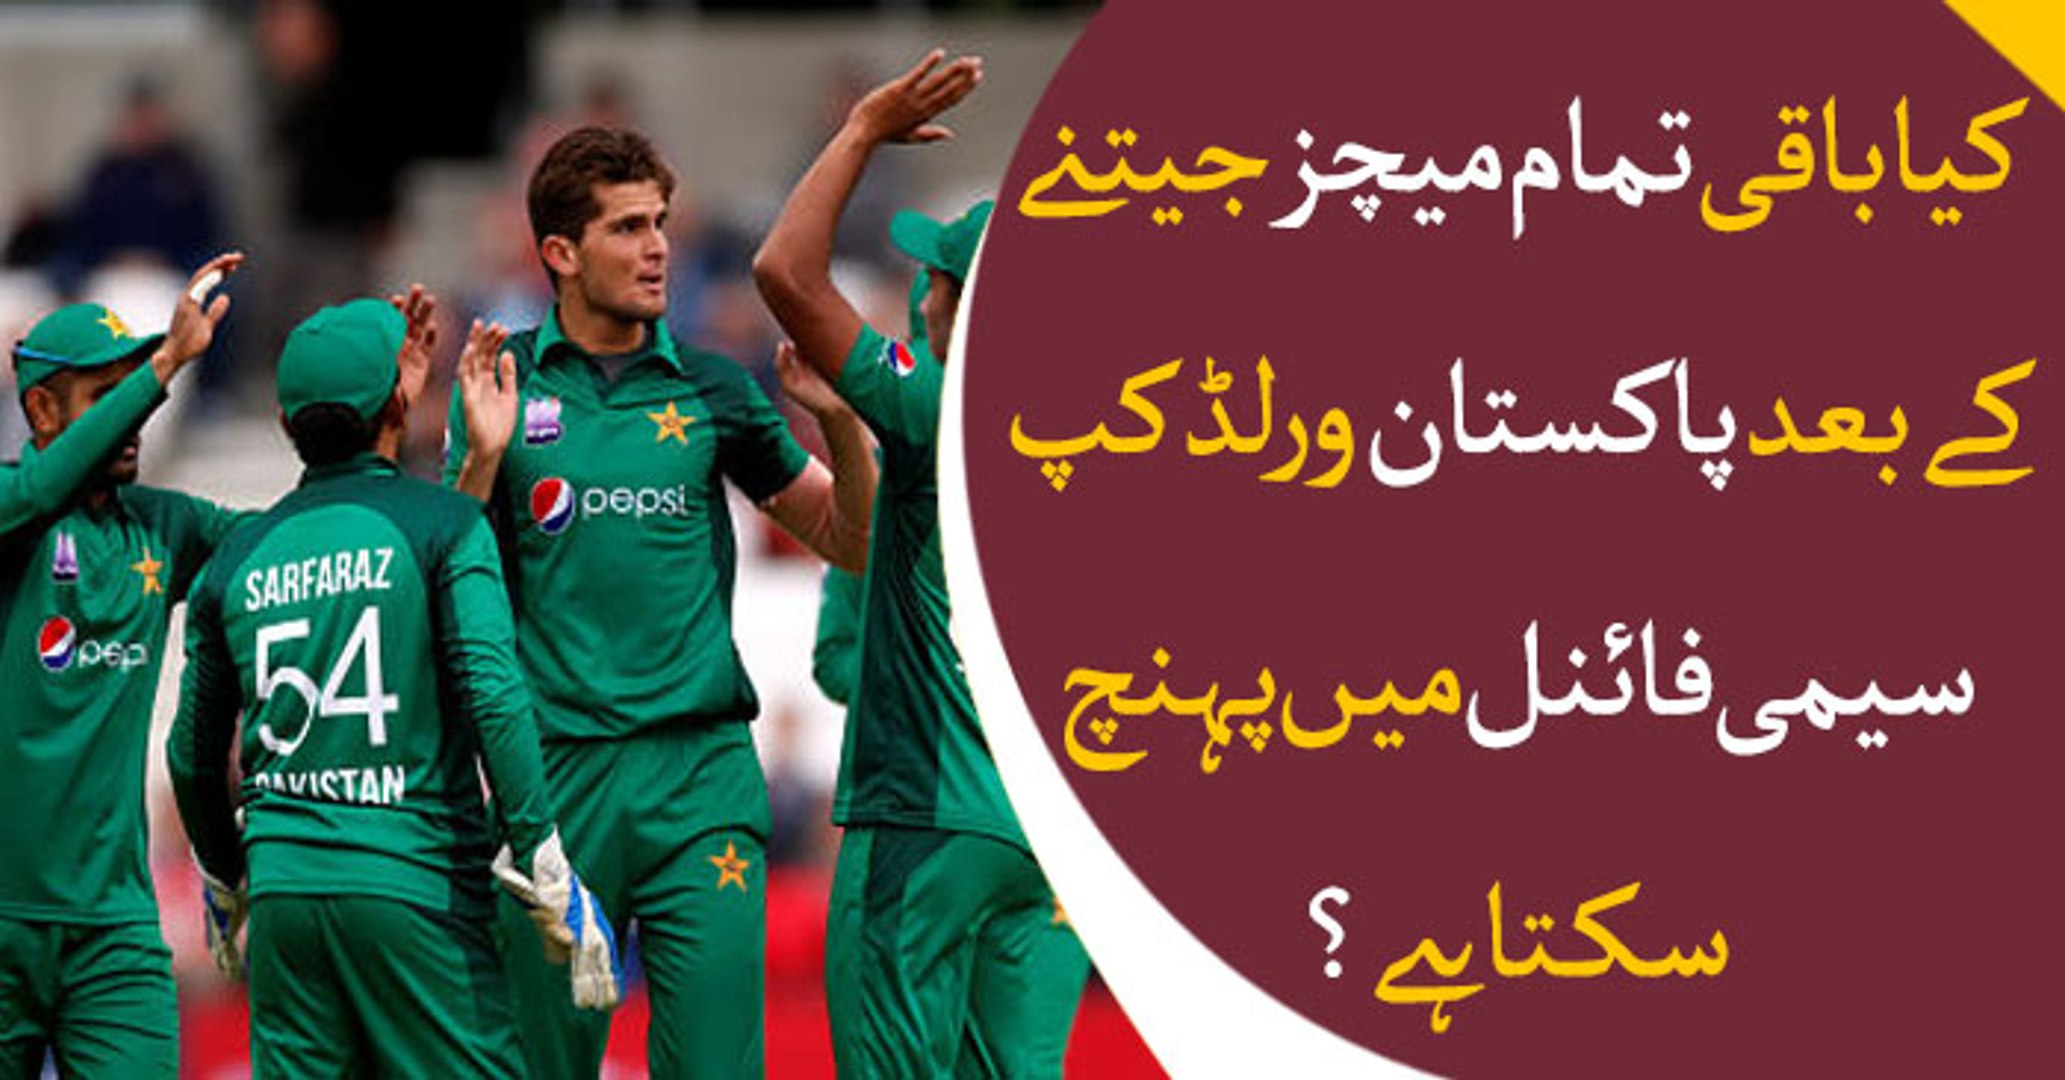 Pakistan team still has a chance to qualify for semi final?